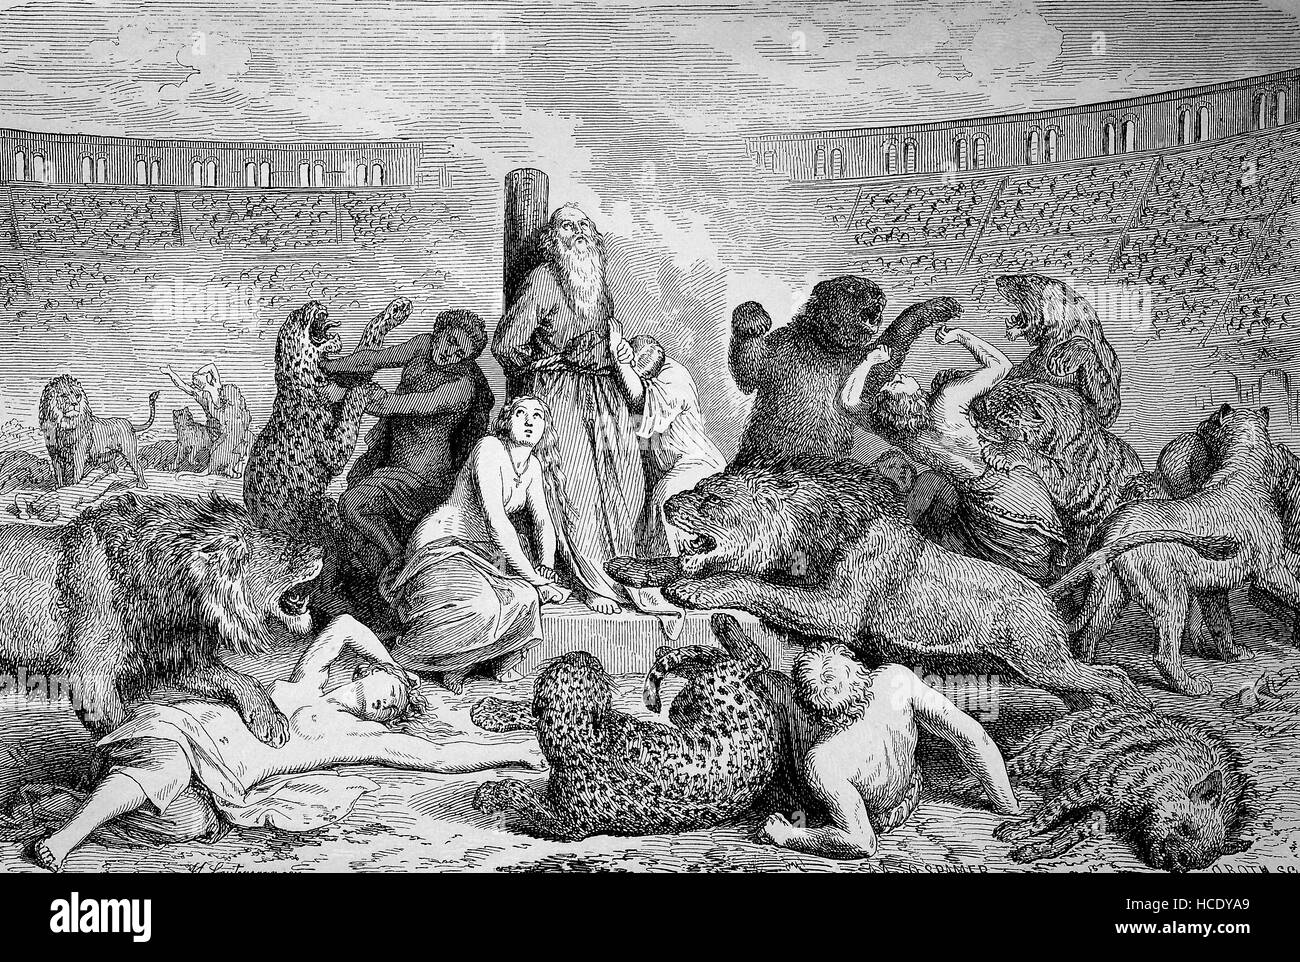 Persecution of Christians, Anti-Christian policies in the Roman Empire, christs as victims of predators in the circus - Stock Image